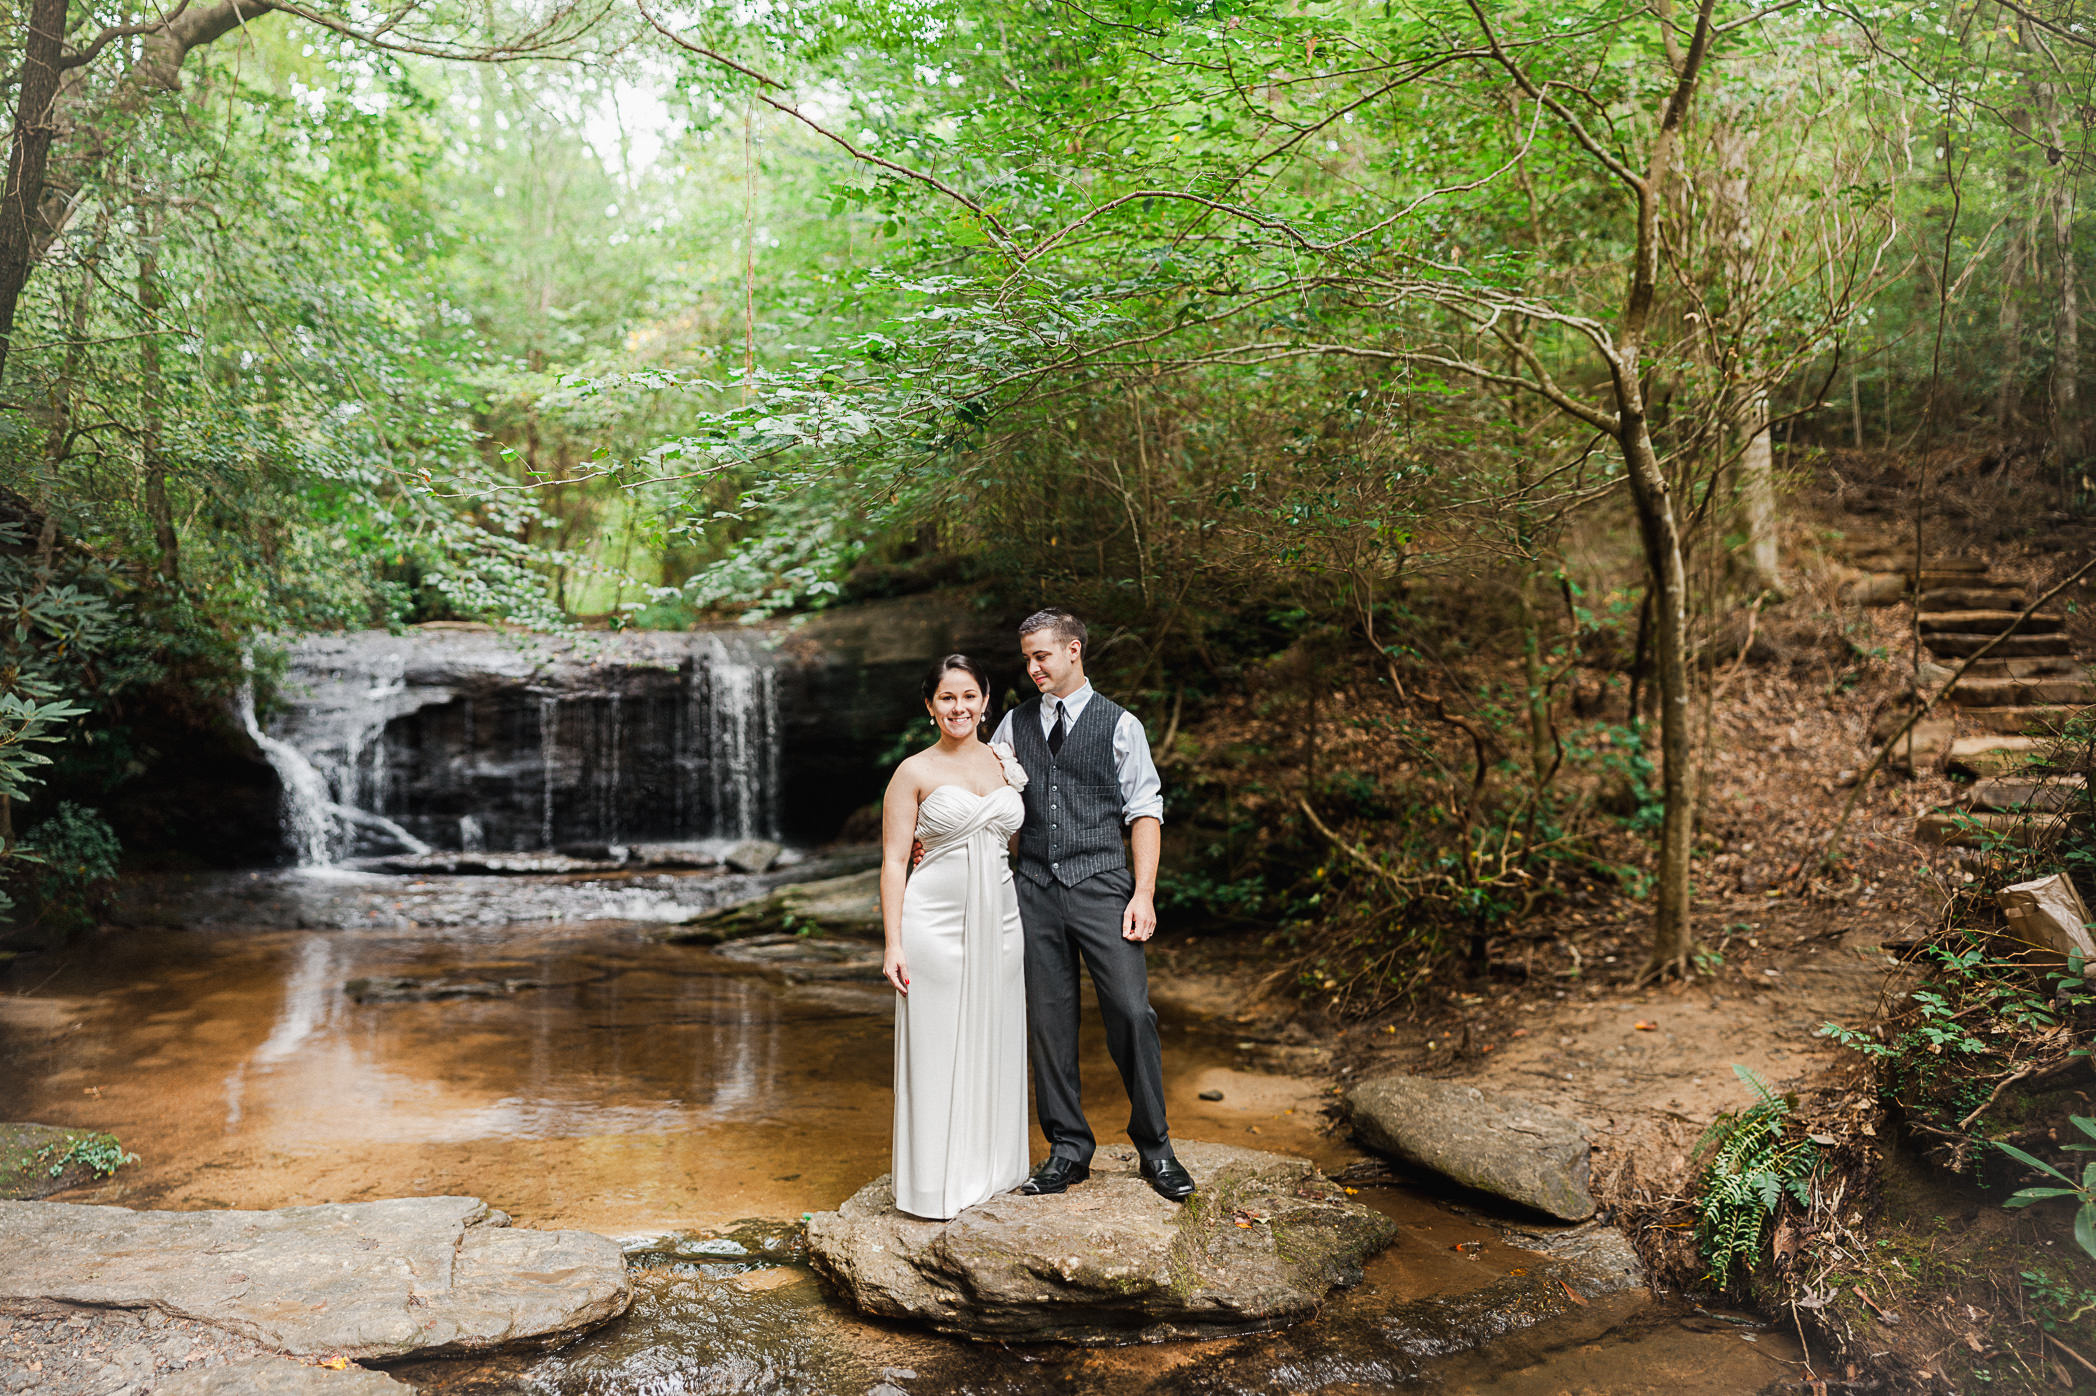 wildcat_falls_wedding (10 of 36).jpg